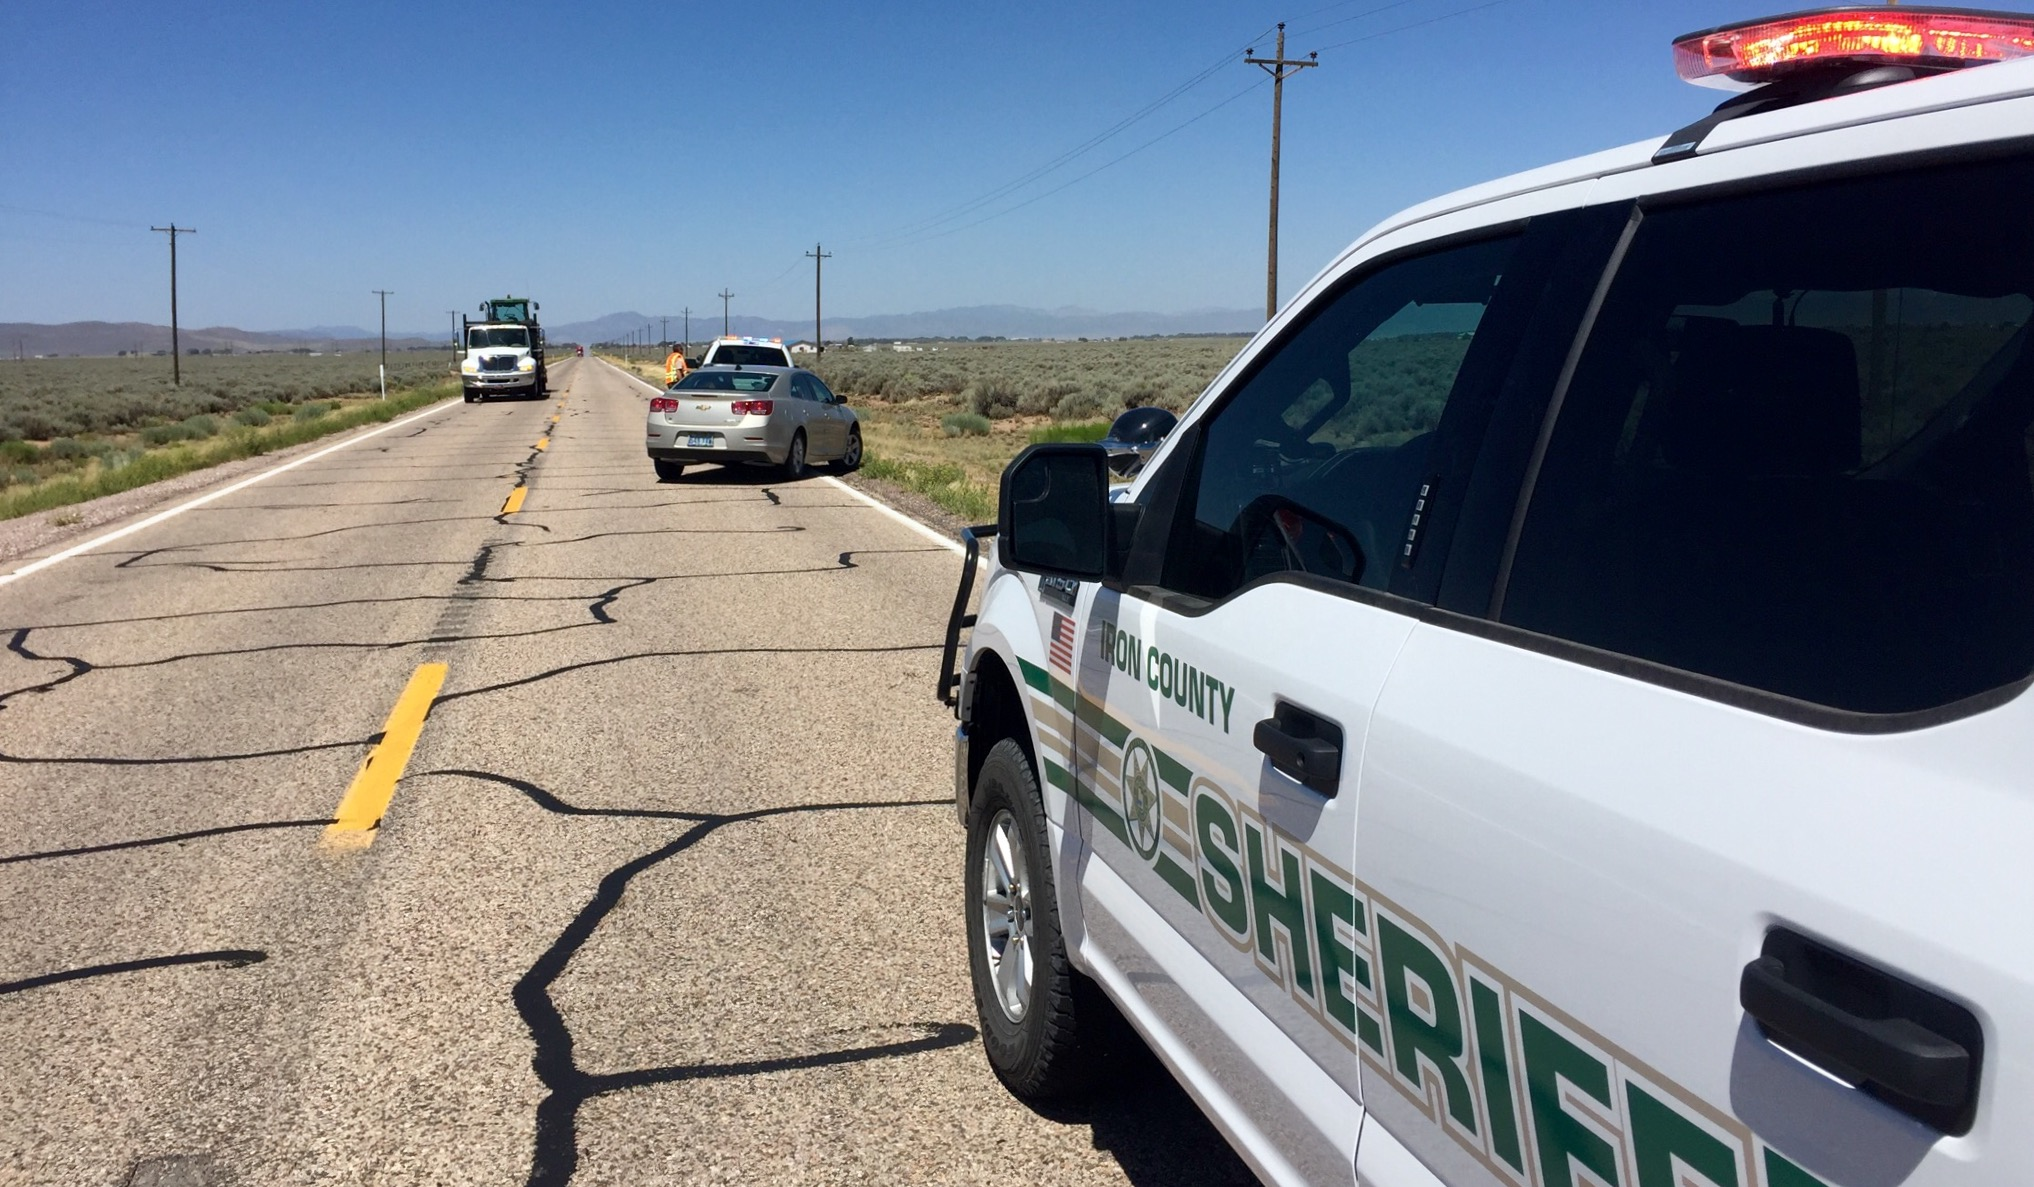 Iron County High Speed Chase